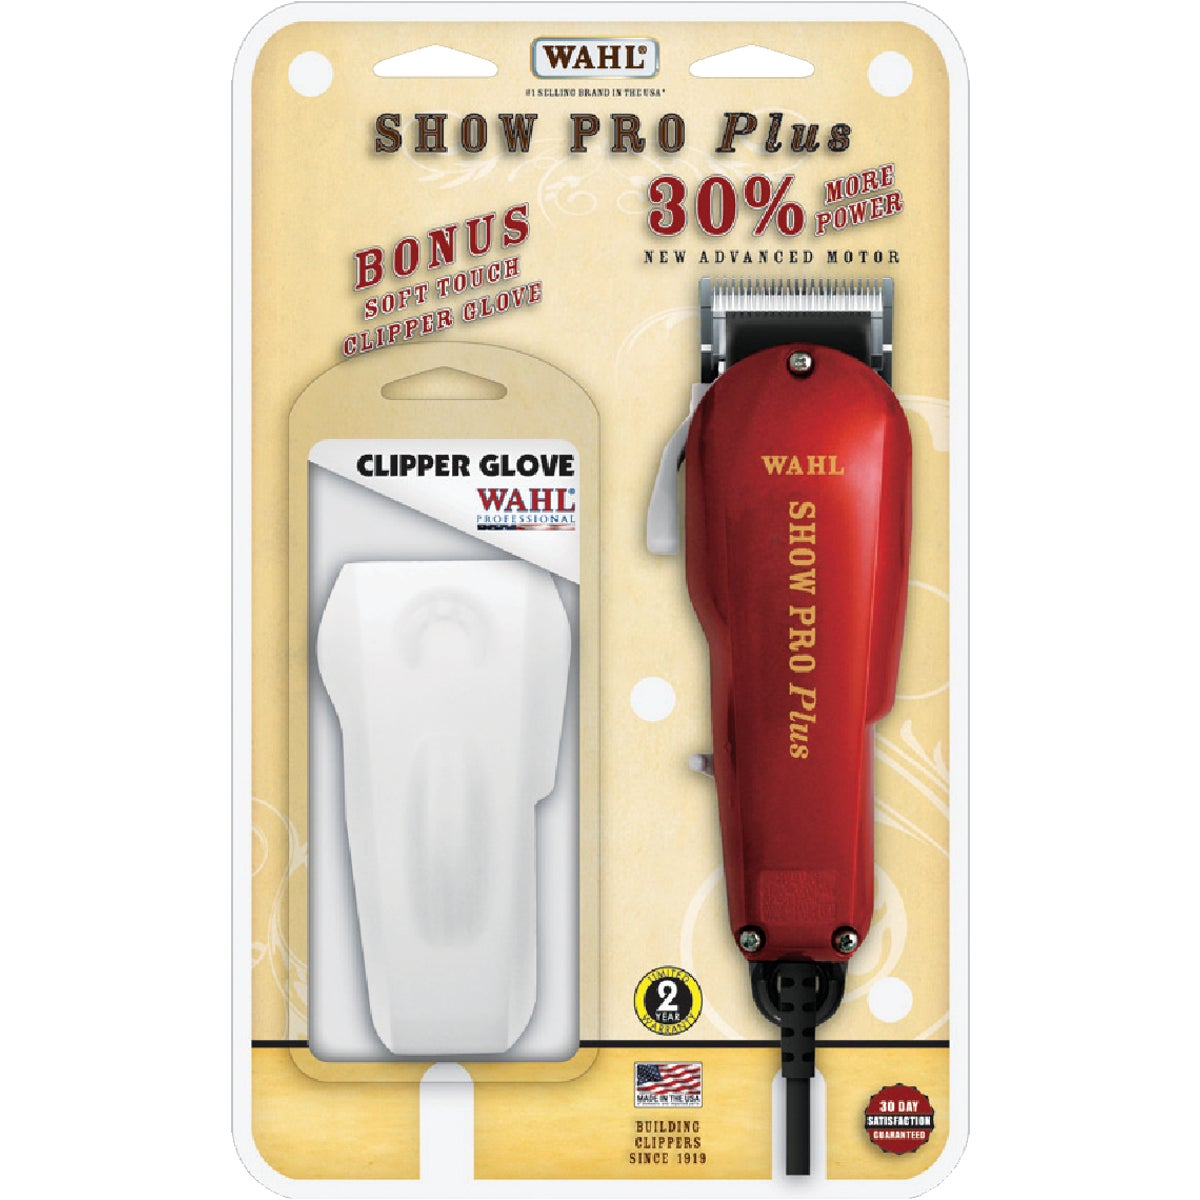 PROPLUS HORSE CLIPPR KIT - 9482-700 by Wahl Clipper Corp